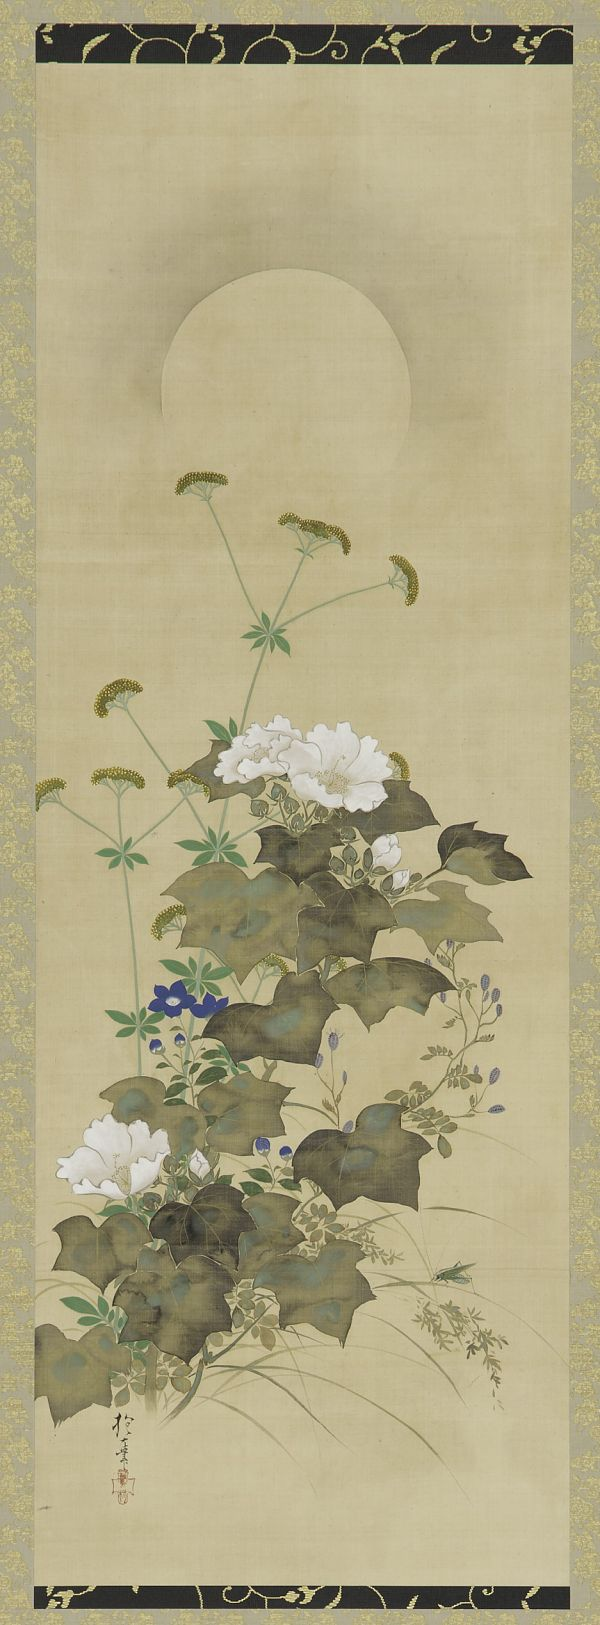 Moon and Autumn Plants. Hanging scroll. Sakai Hōitsu 酒井抱一 (1761-1828) Edo period, early 19th century